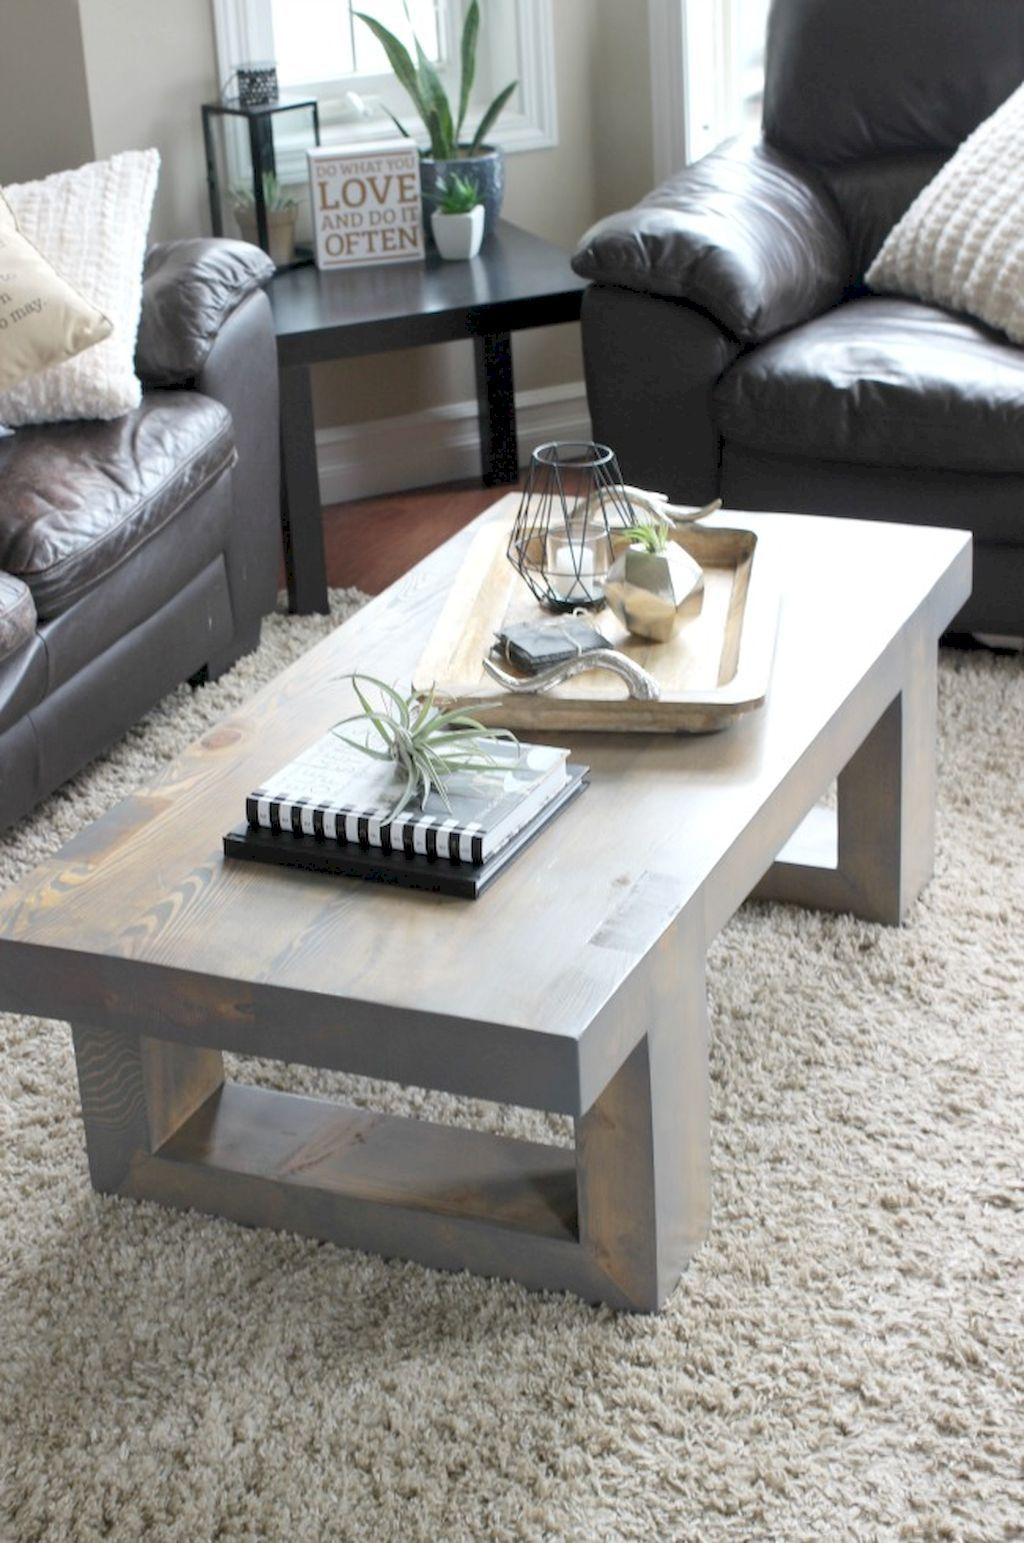 30 Beautiful Diy Coffee Table You Can Build With Inexpensive Materials Coffee Table Inspiration Decorating Coffee Tables Coffee Table Plans